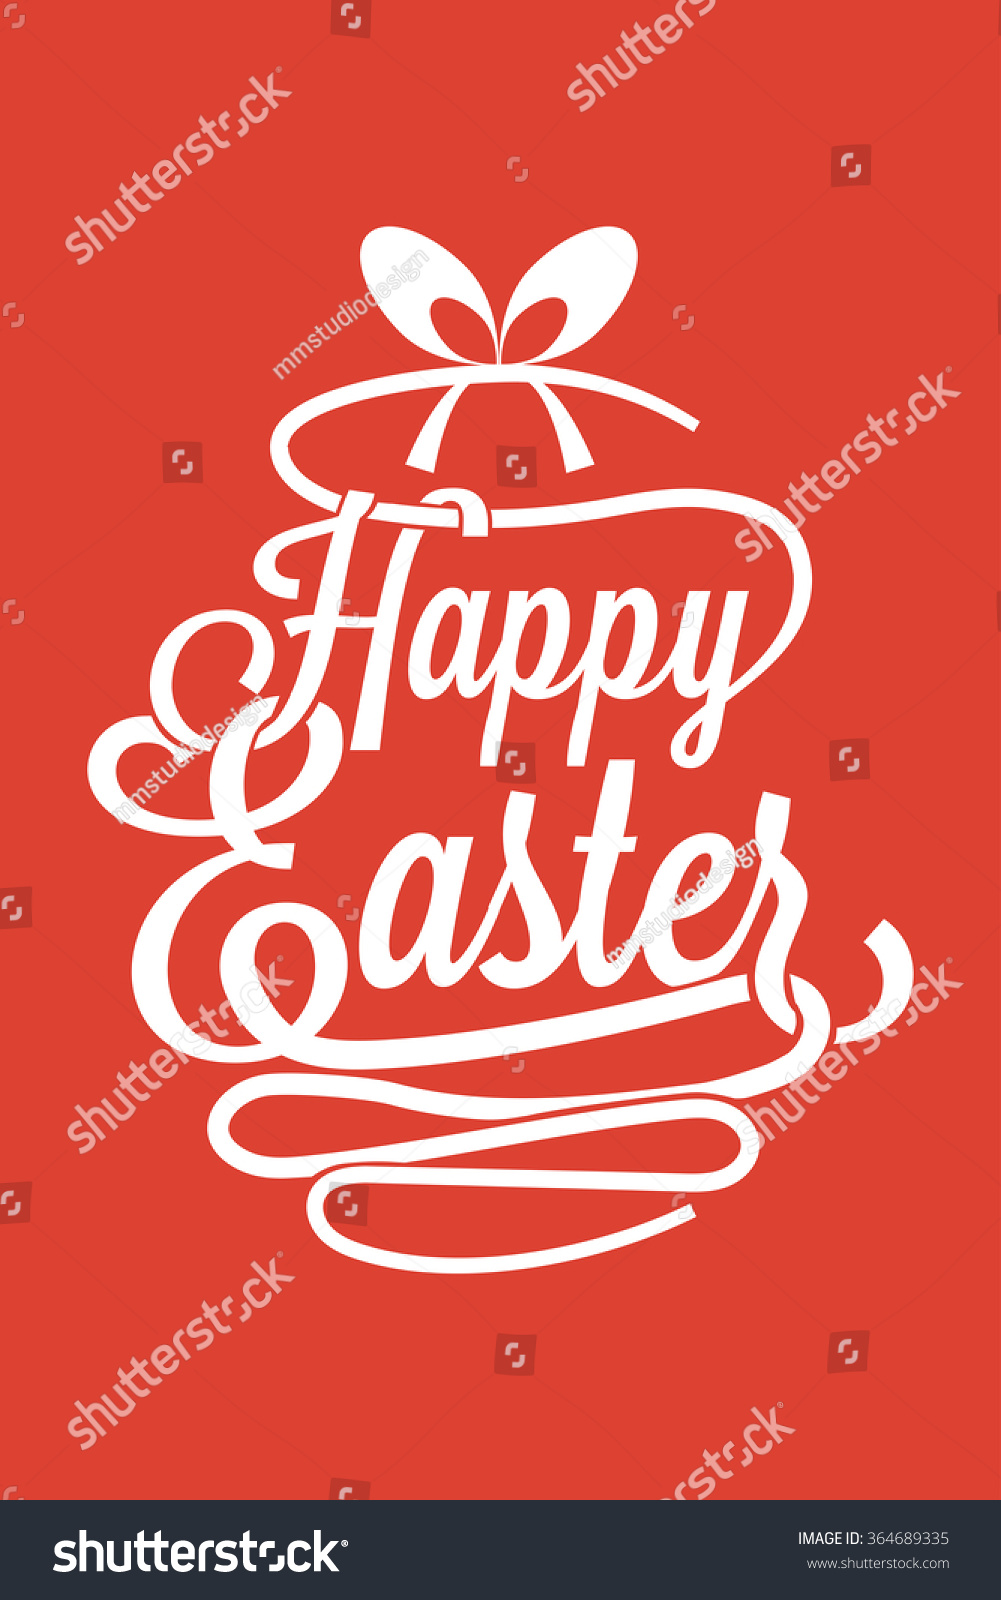 Happy easter greeting card calligraphic words stock vector 364689335 happy easter greeting card with calligraphic words and egg m4hsunfo